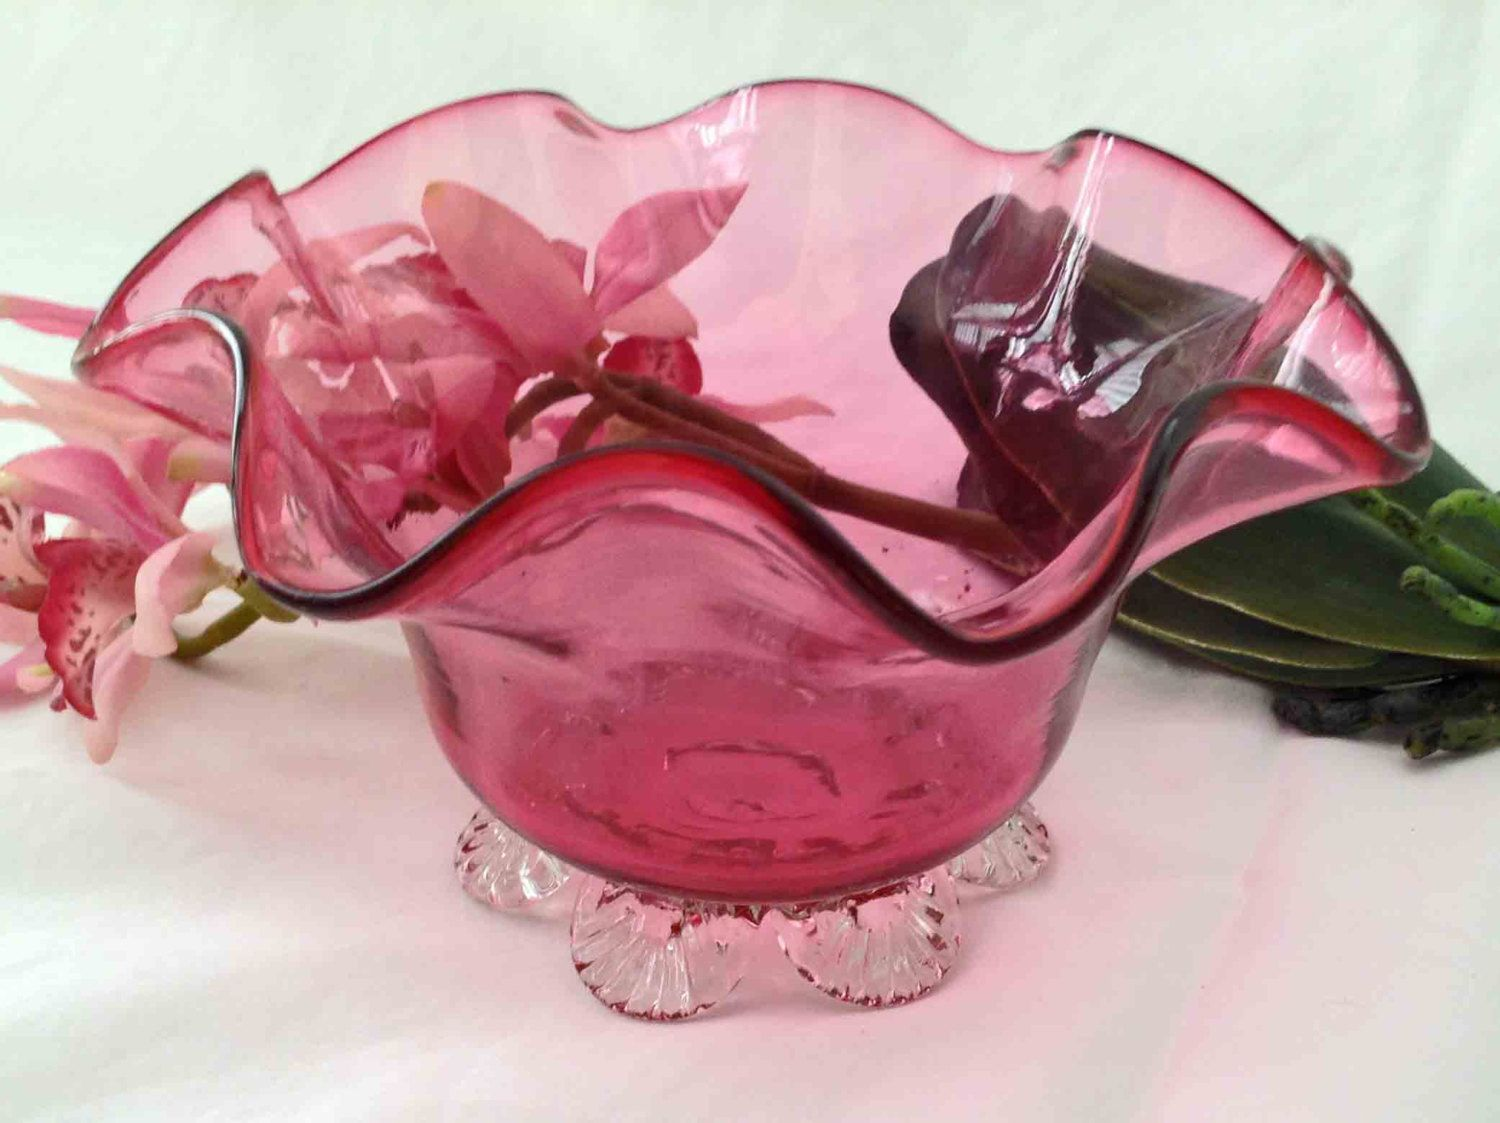 Hand blown cranberry bowl pontil mark footed fluted hand blown cranberry bowl pontil mark footed fluted transparent cranberry glass mint condition hand blown glass art reviewsmspy